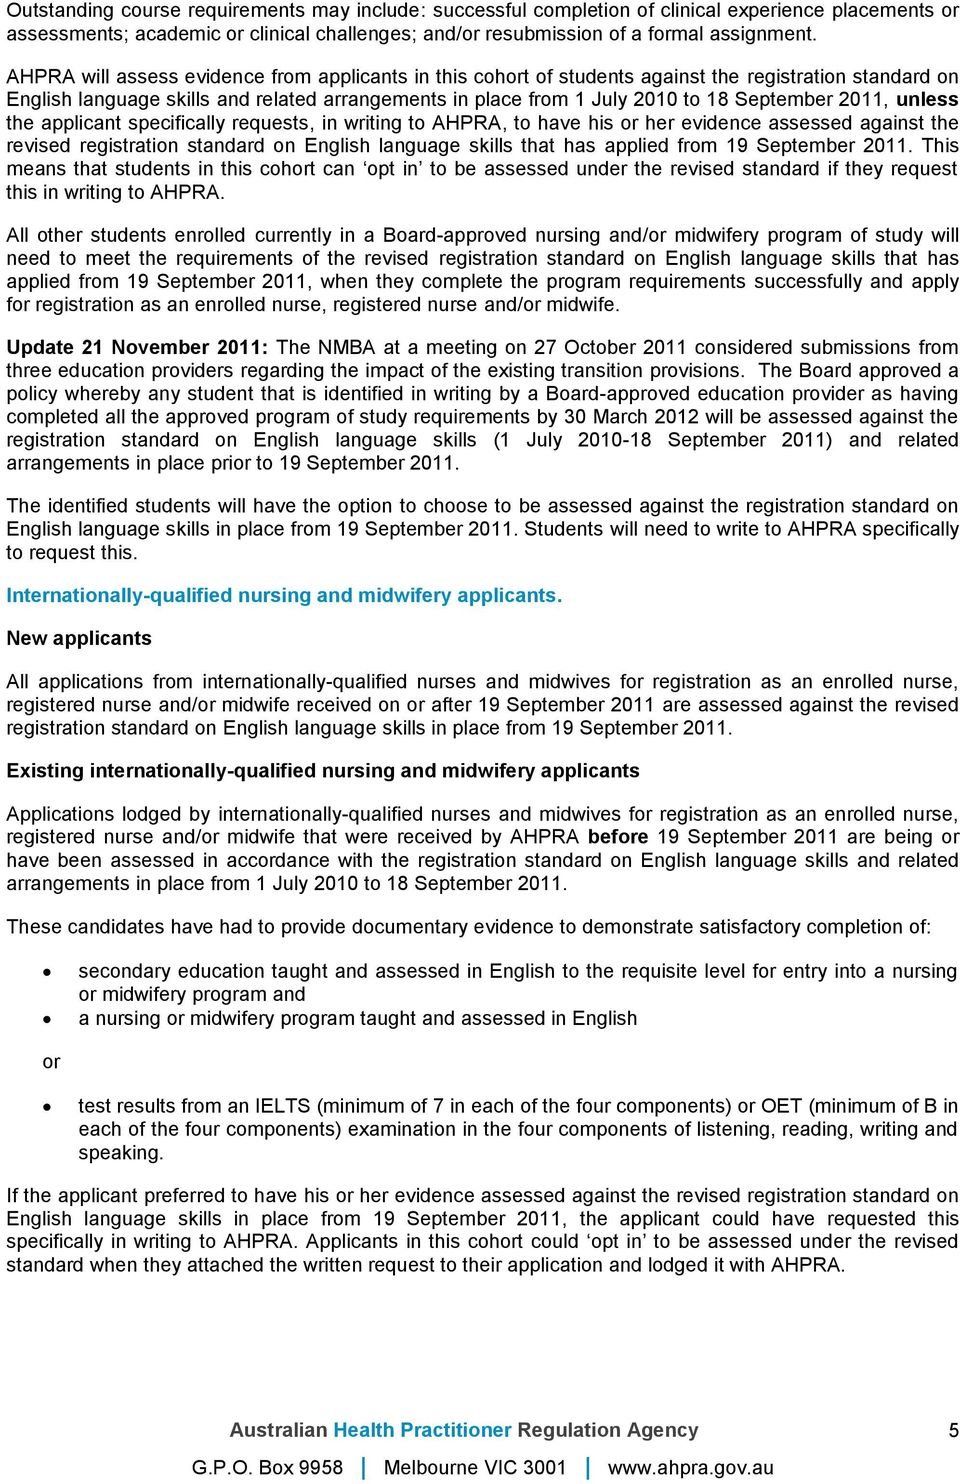 unless the applicant specifically requests, in writing t AHPRA, t have his r her evidence assessed against the revised registratin standard n English language skills that has applied frm 19 September